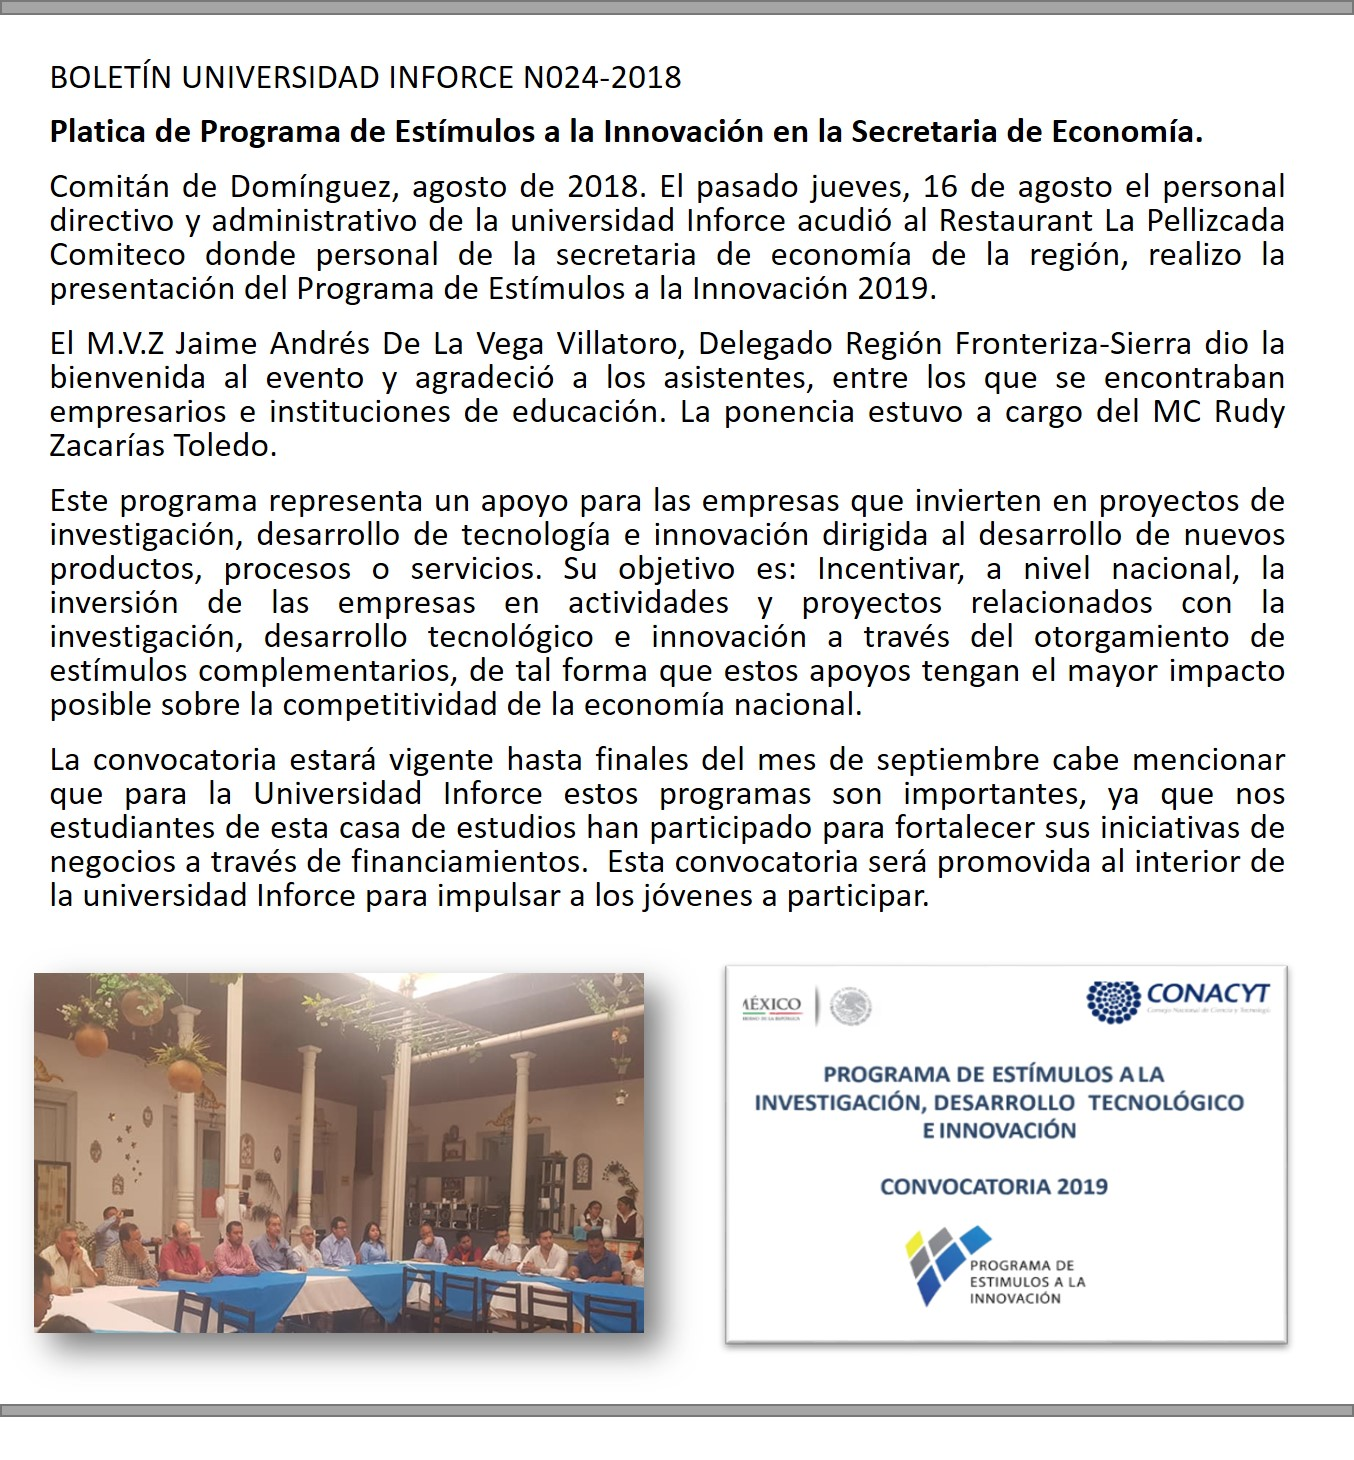 boletin-universidad-inforce-n024-2018.jpg